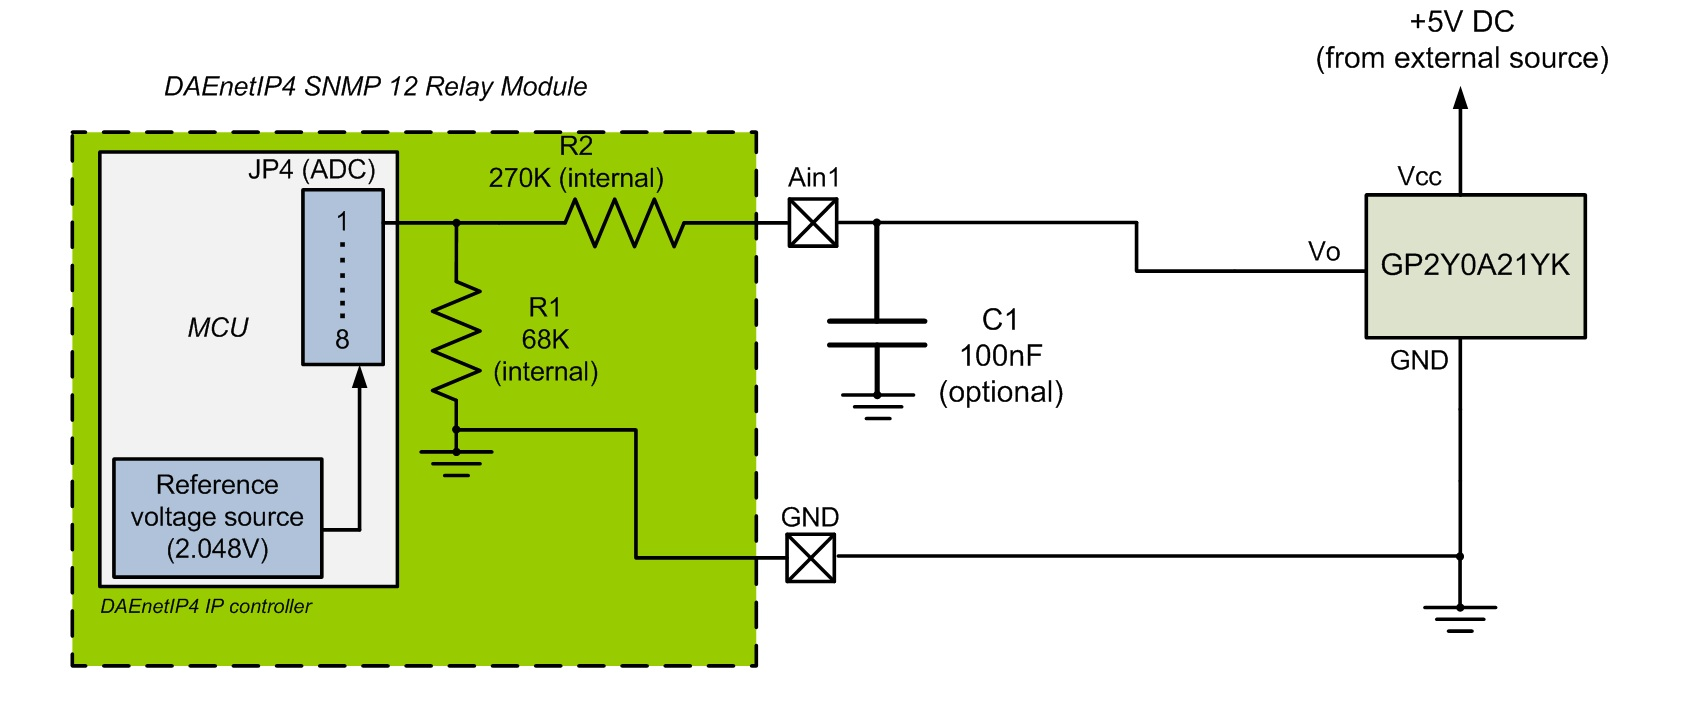 Connecting GP2y0A21YK (distance sensor) to DAEnetIP4 12 Relay Board